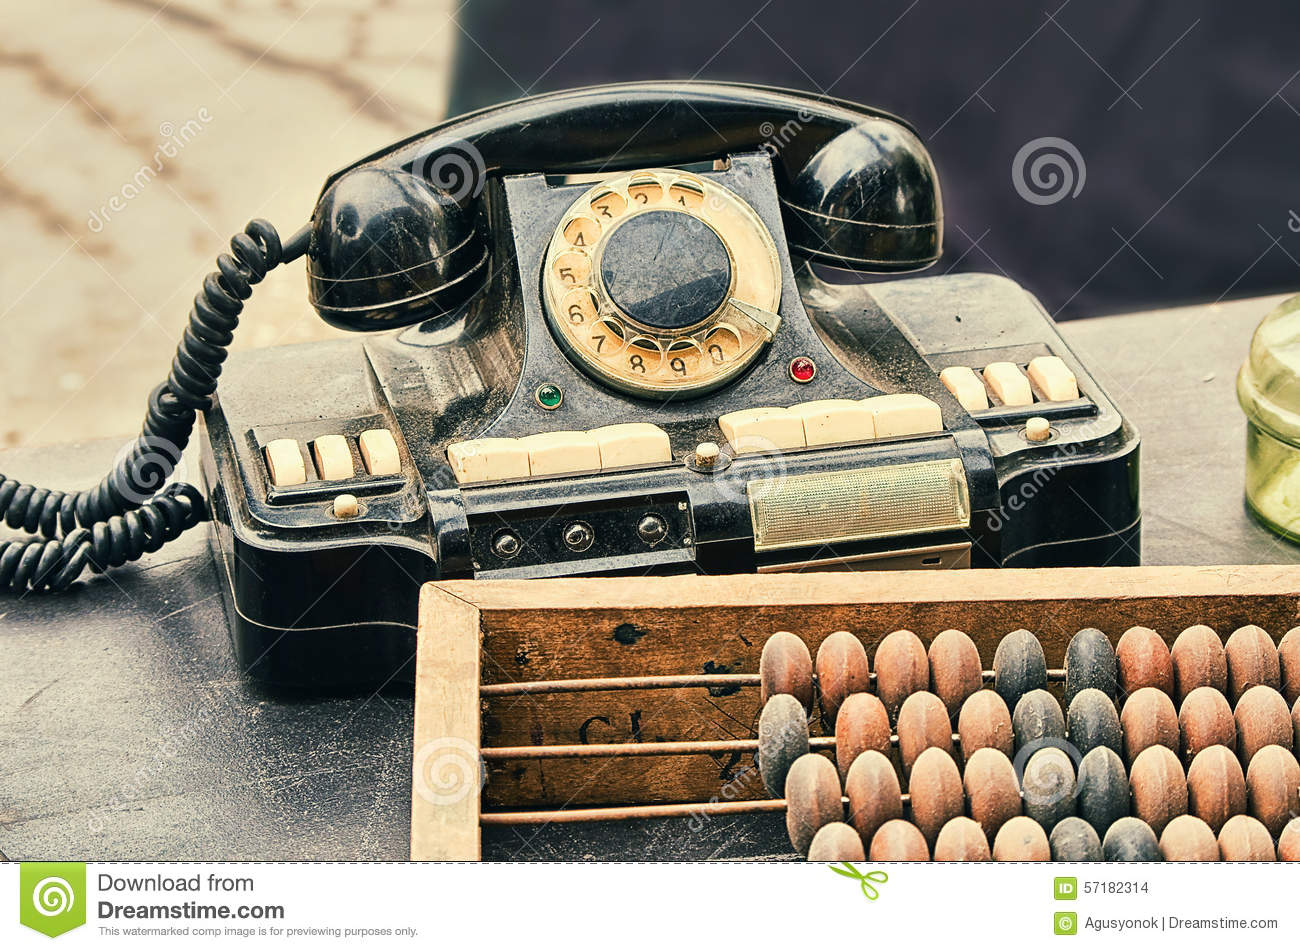 hight resolution of old retro objects antique phone accounting abacus on wooden table stock photo 57182314 megapixl